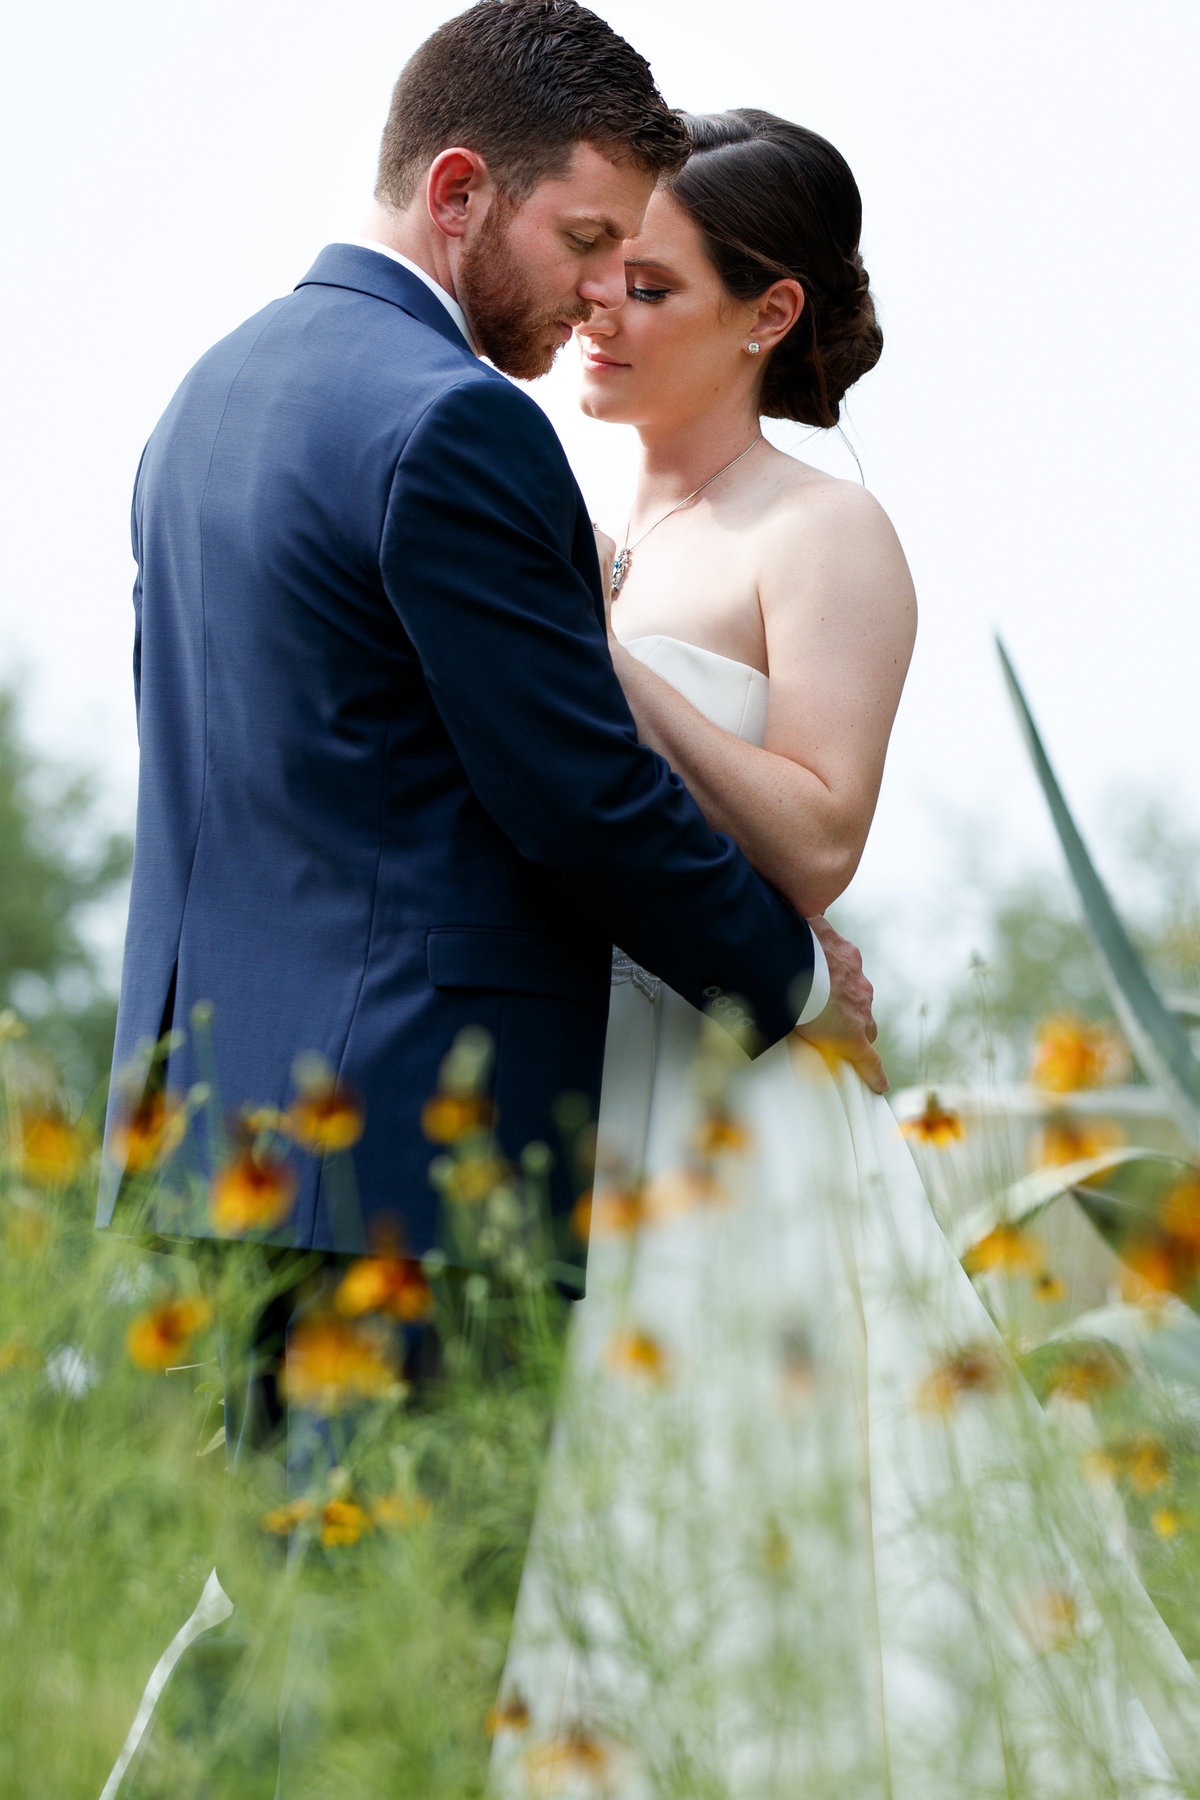 terrace club wedding photographer romantic moment natural intimate bride groom 2600 US-290, Dripping Springs, TX 78620